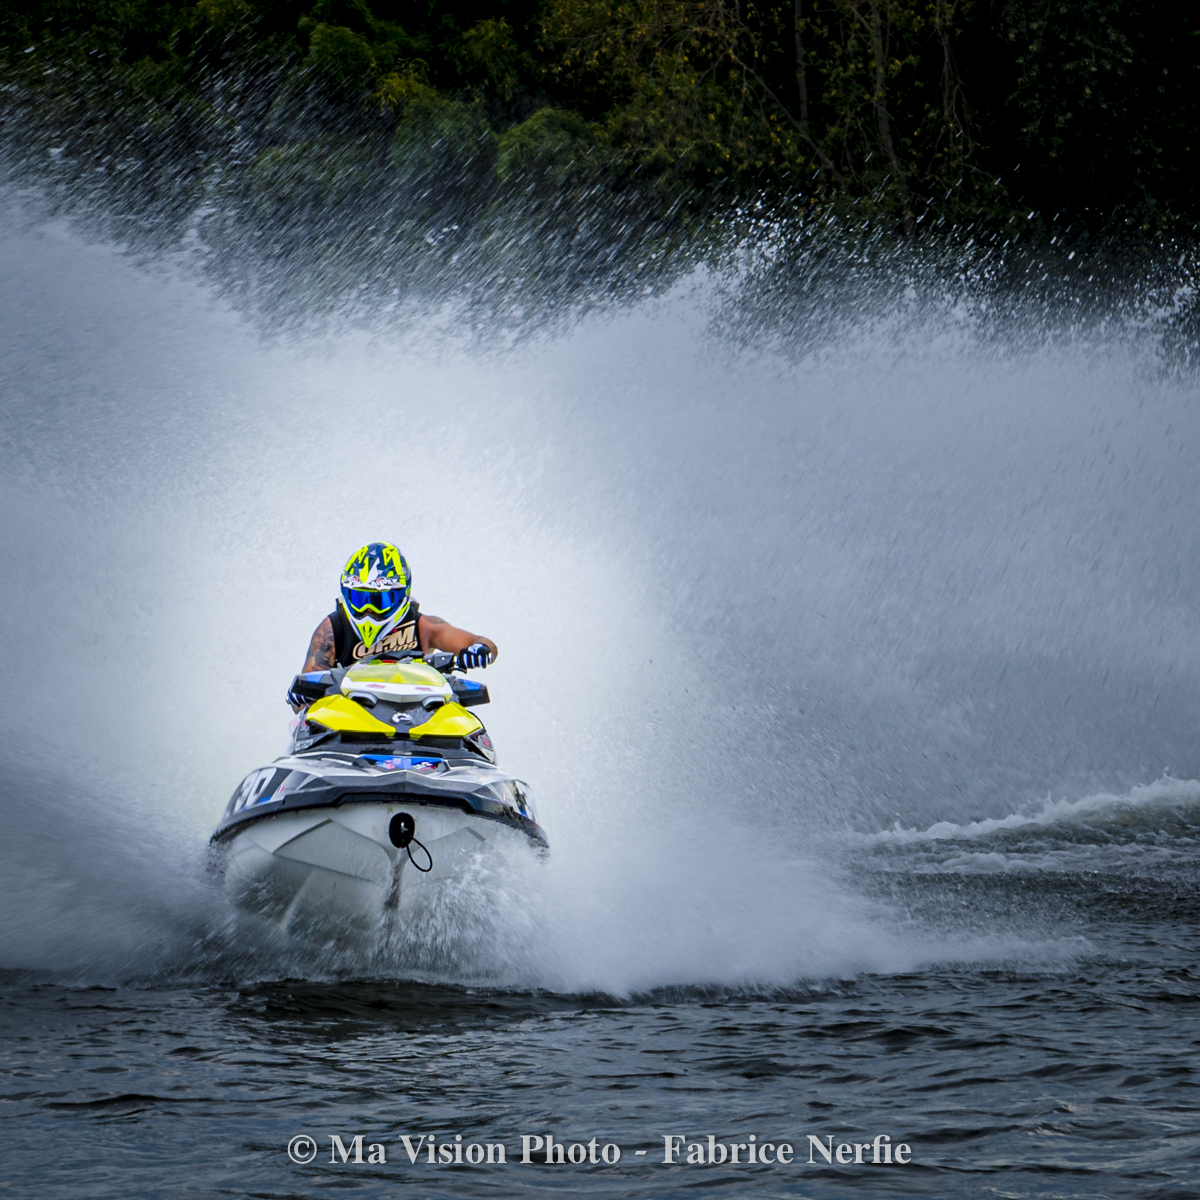 Photo Evenement Championnat de France Jetski Moissac Photographe Fabrice-Nerfie-10